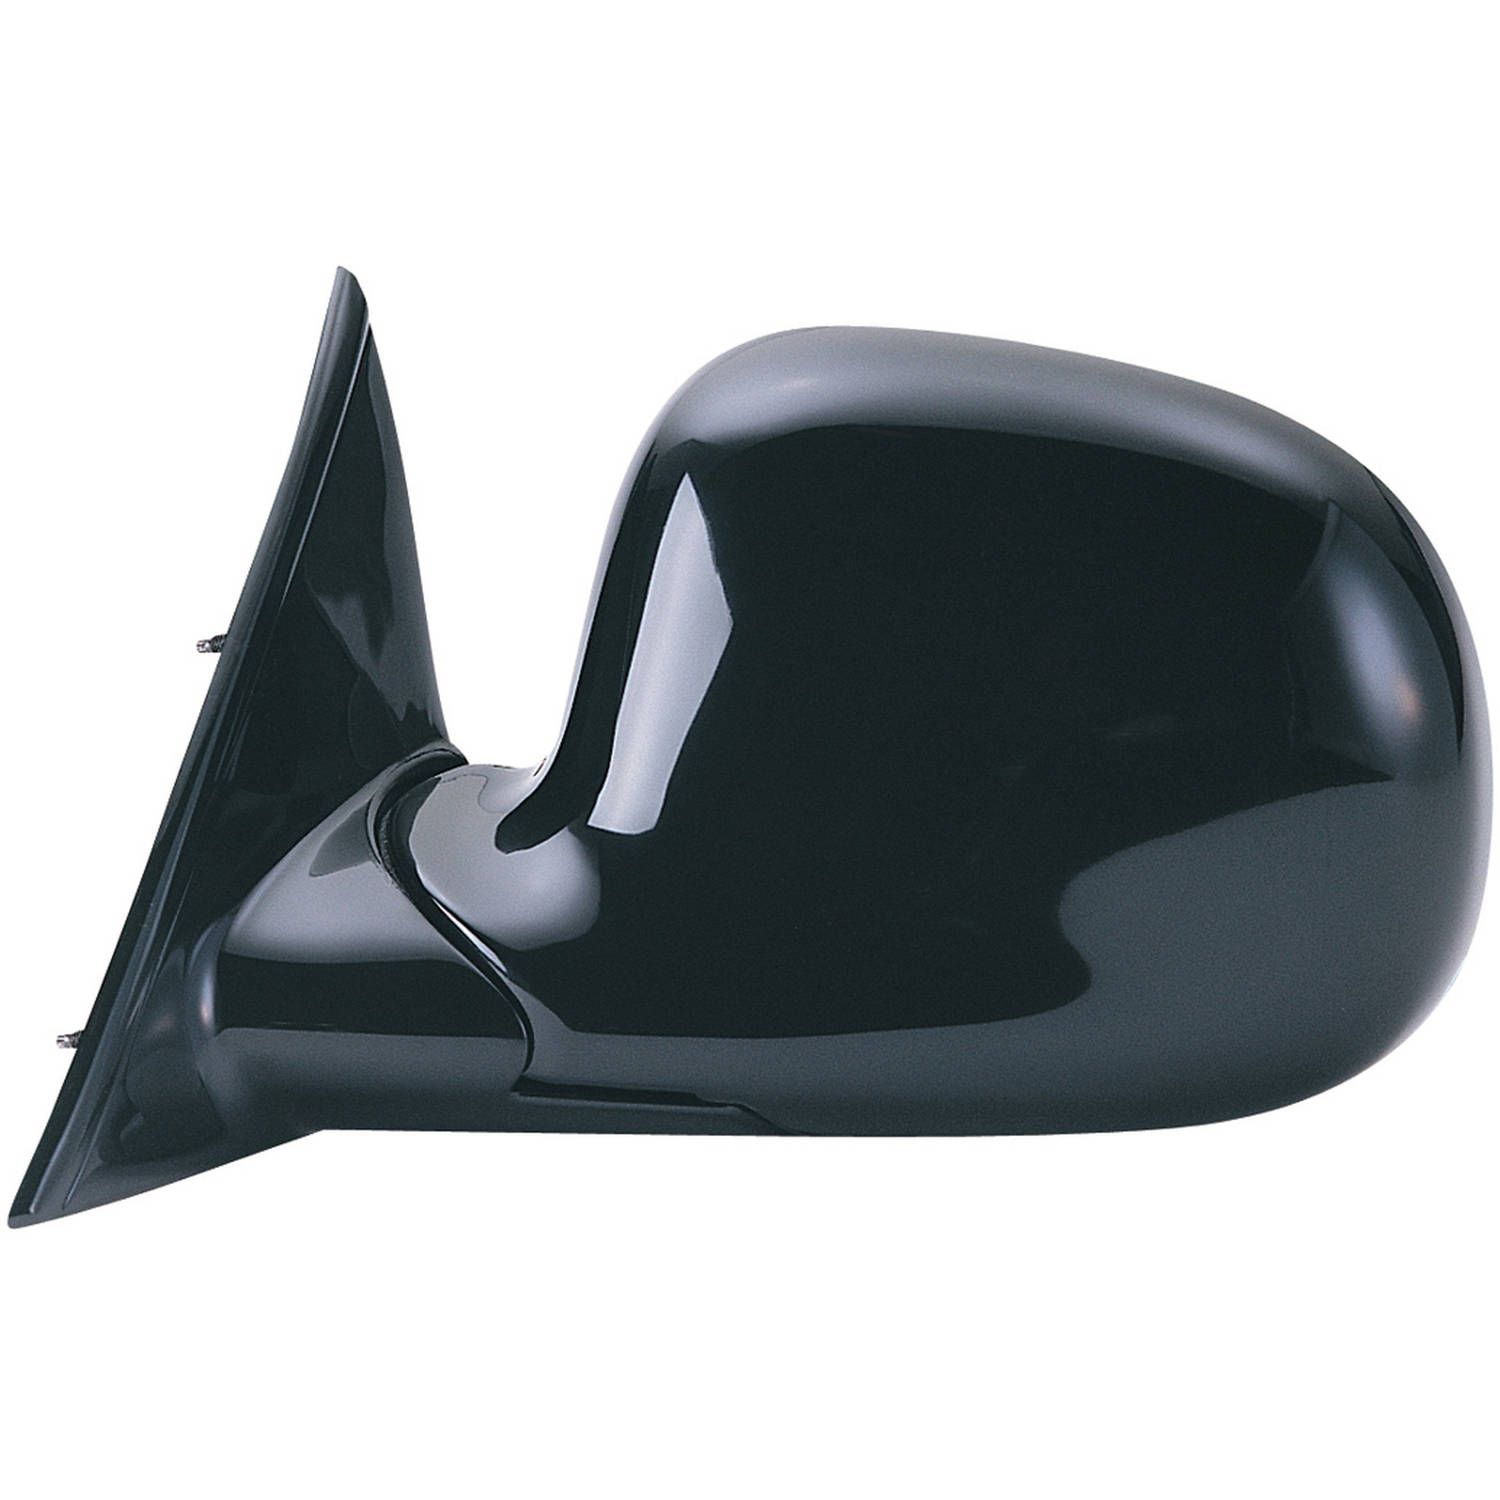 62008G - Fit System 94-98 Chevrolet Blazer, S10 P-U, GMC Jimmy, Sonoma P-U, Oldsmobile Bravada, OEM Style Replacement Mirror, Driver Side - check description for fitment